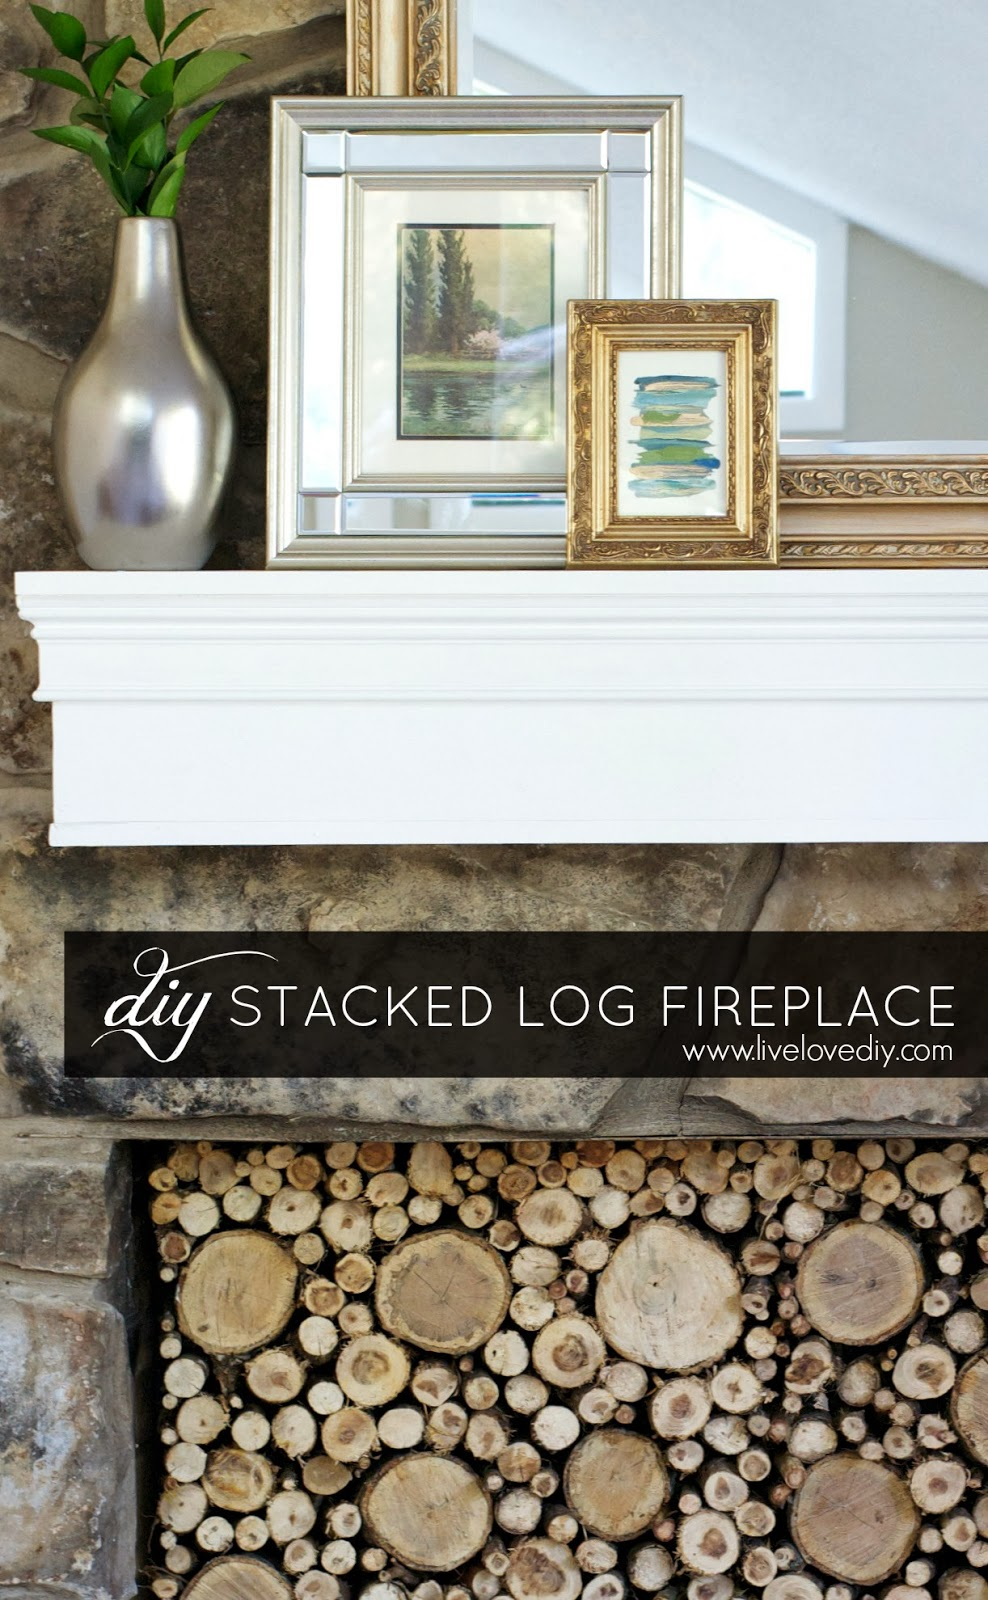 LiveLoveDIY: Faux Stacked Log Fireplace Tutorial